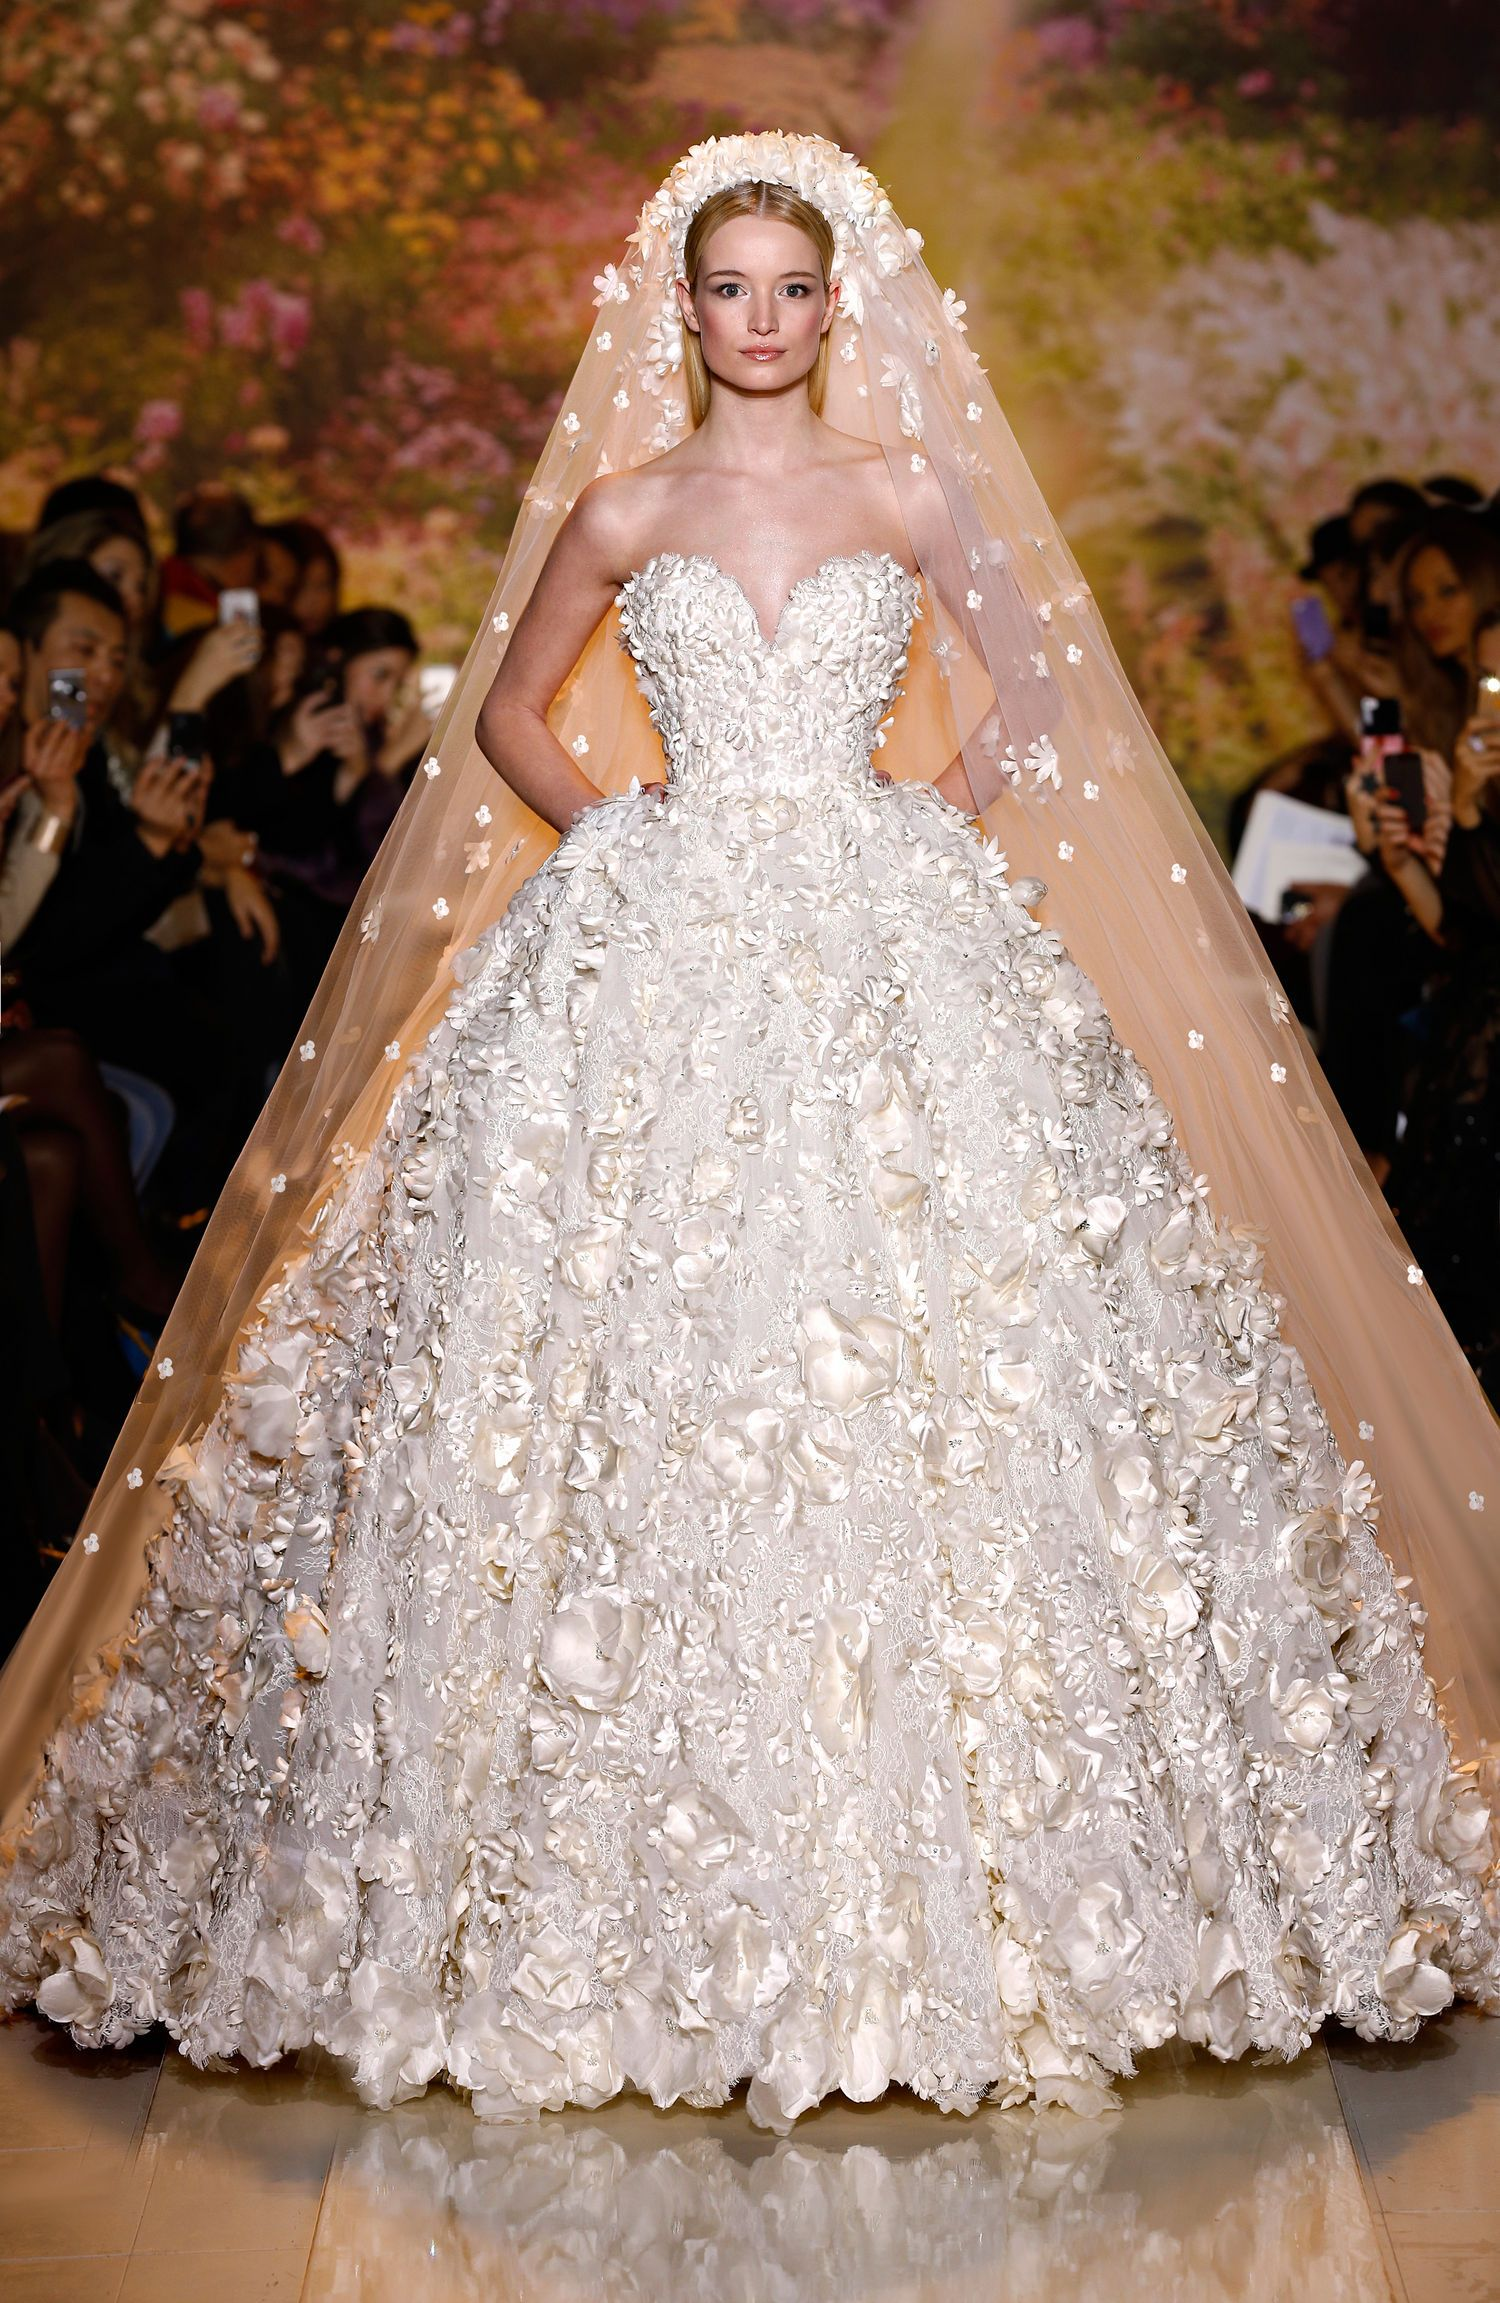 Pin on Bridal Fashions & Couture